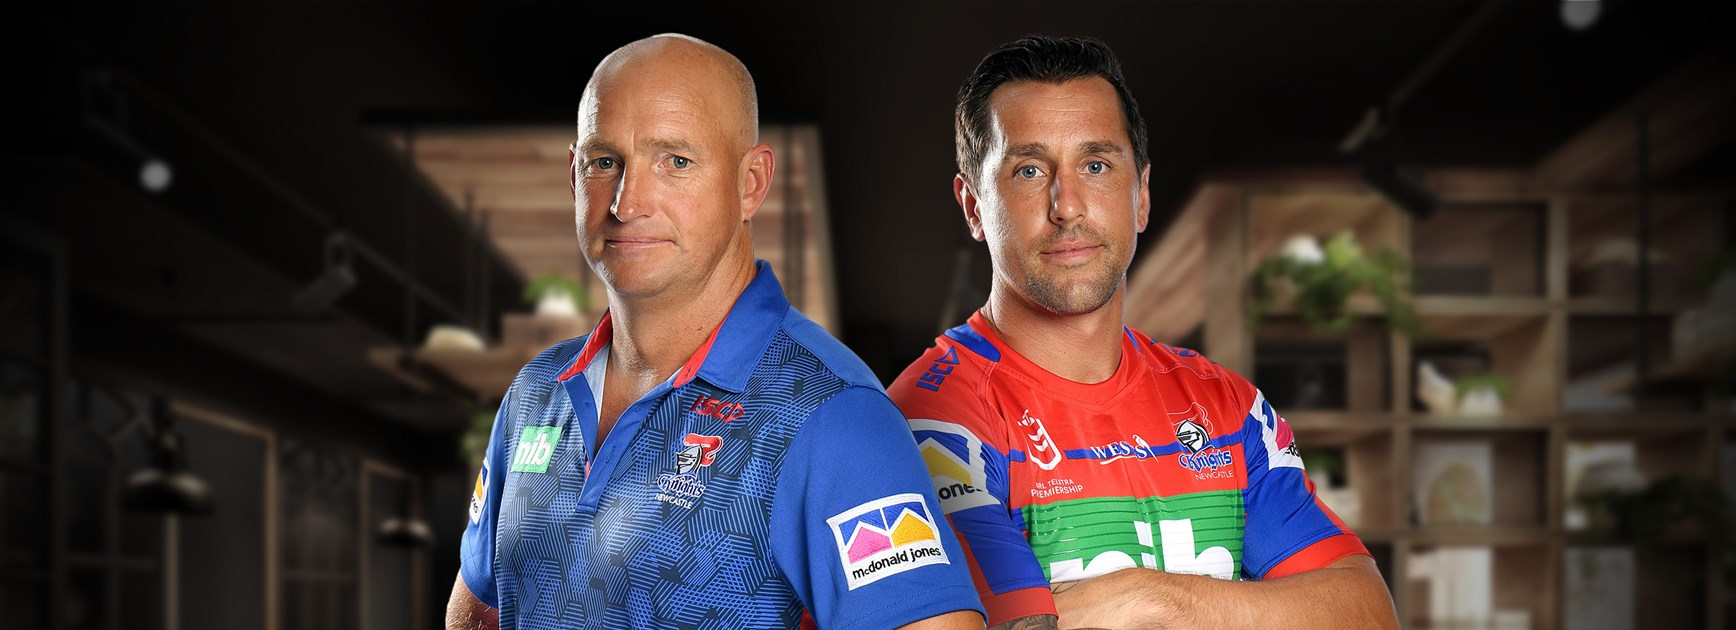 Knight time dining: Brown, Pearce make a meal of rift claims